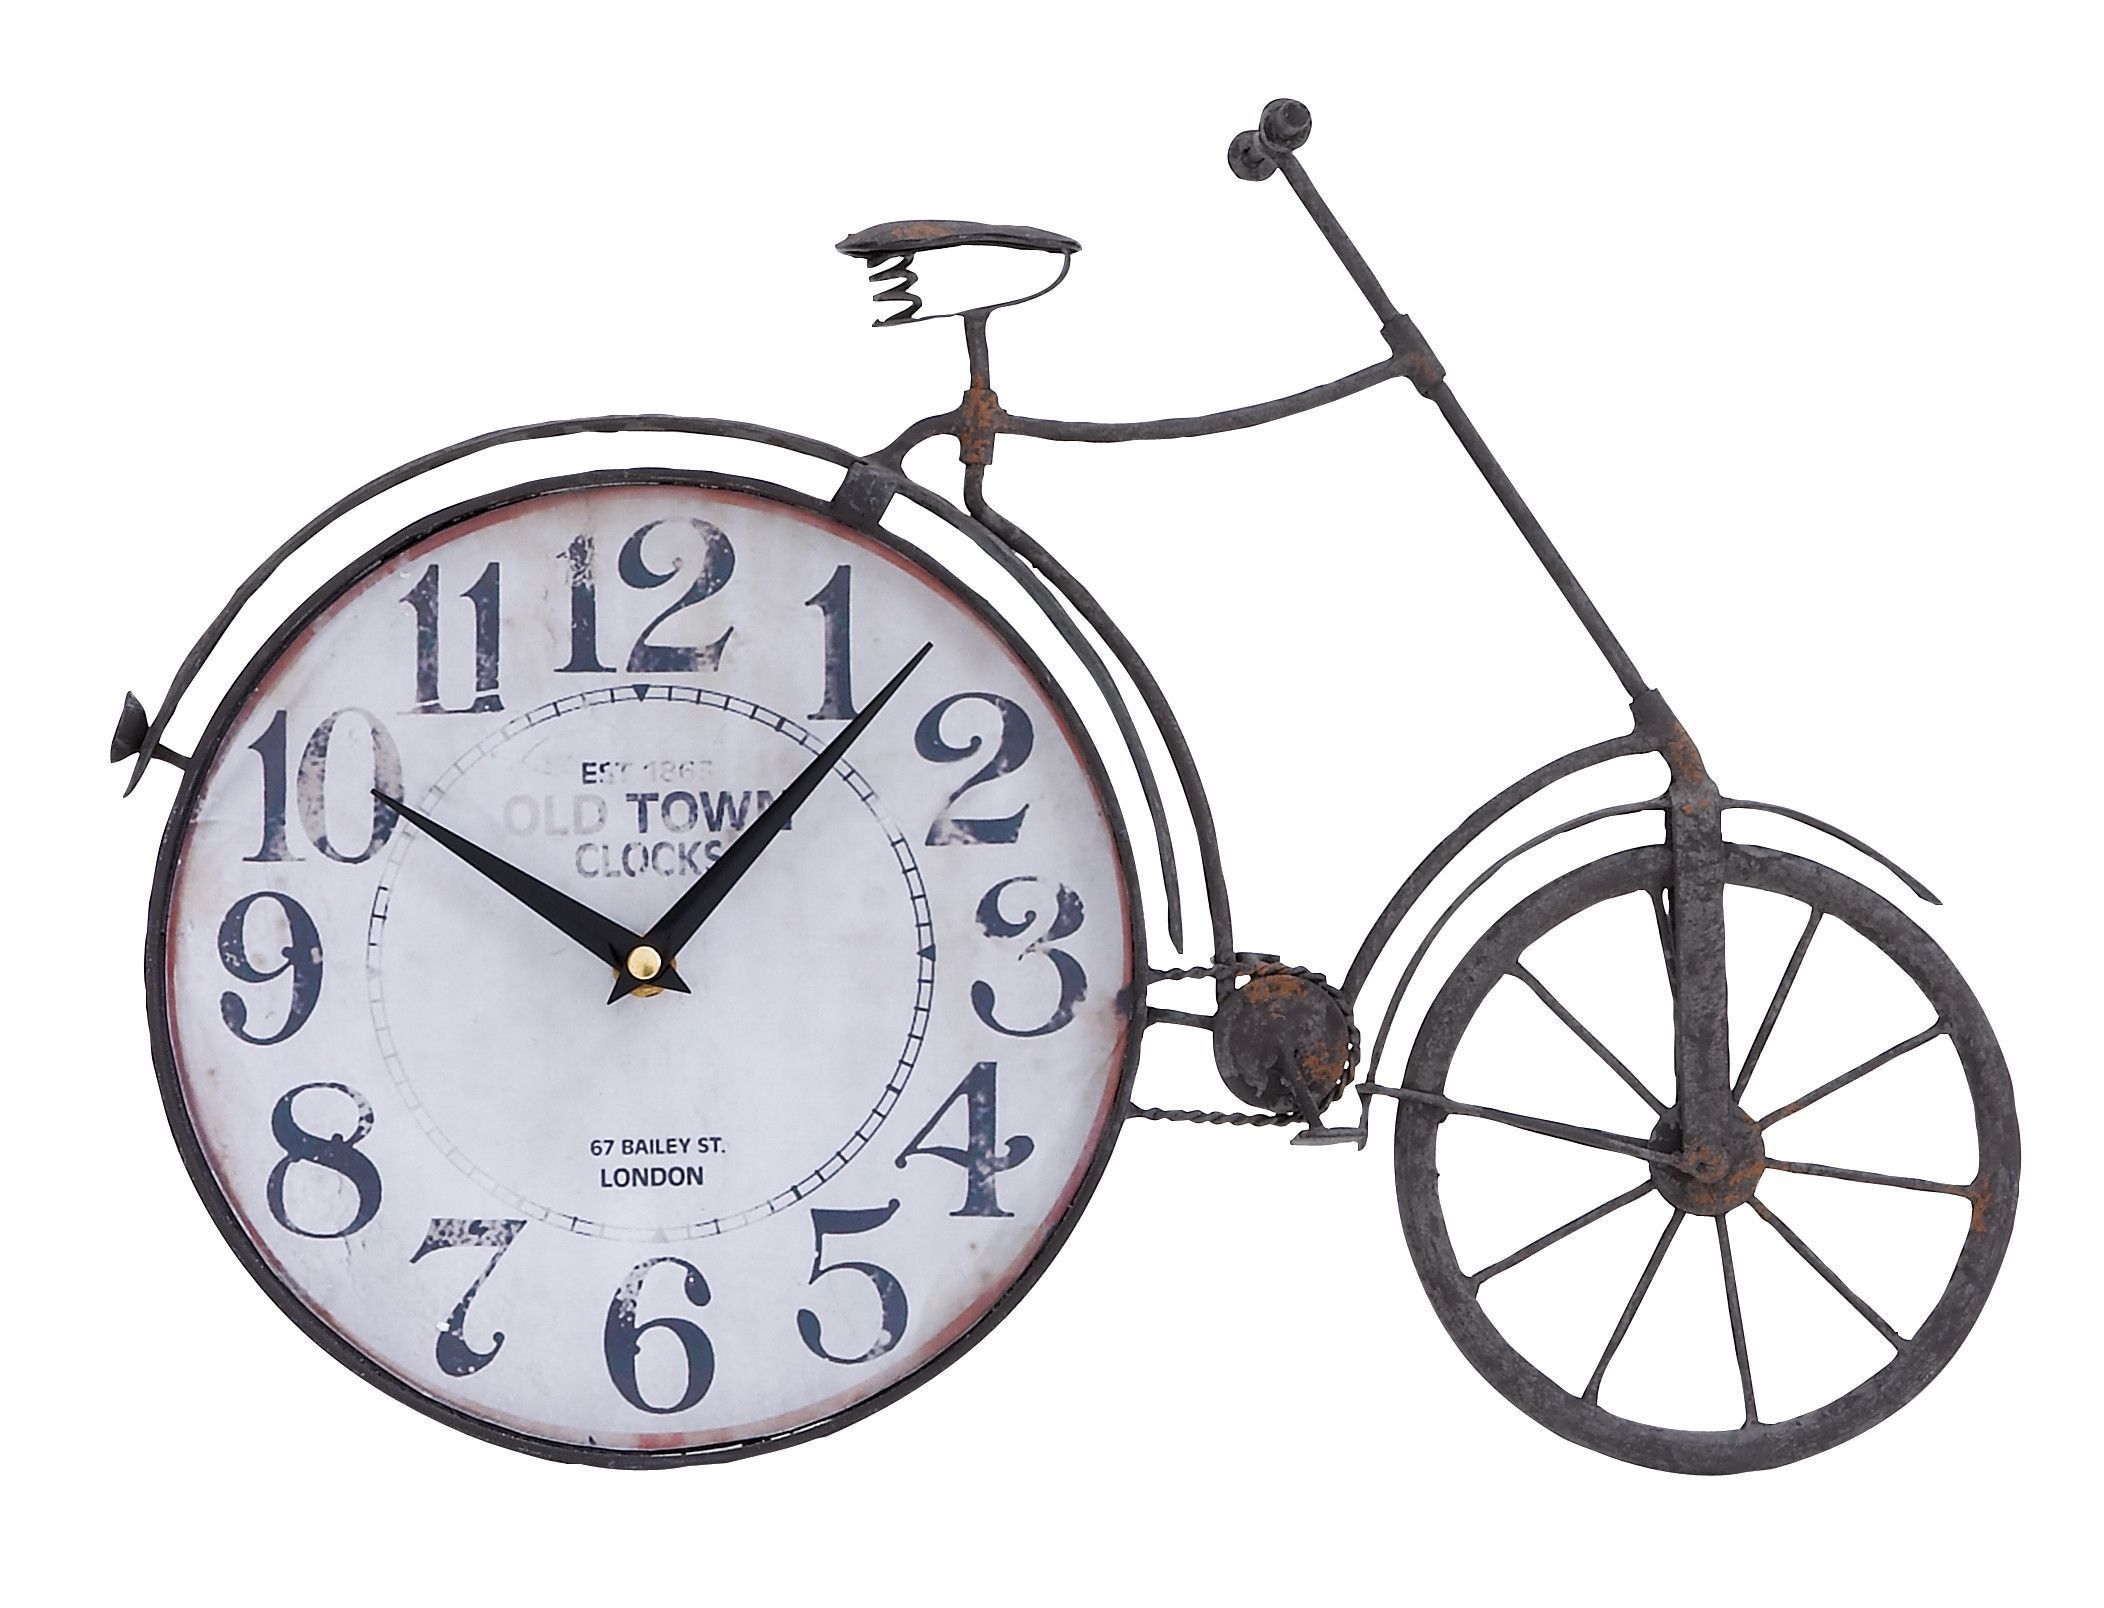 the classic bicycle clock